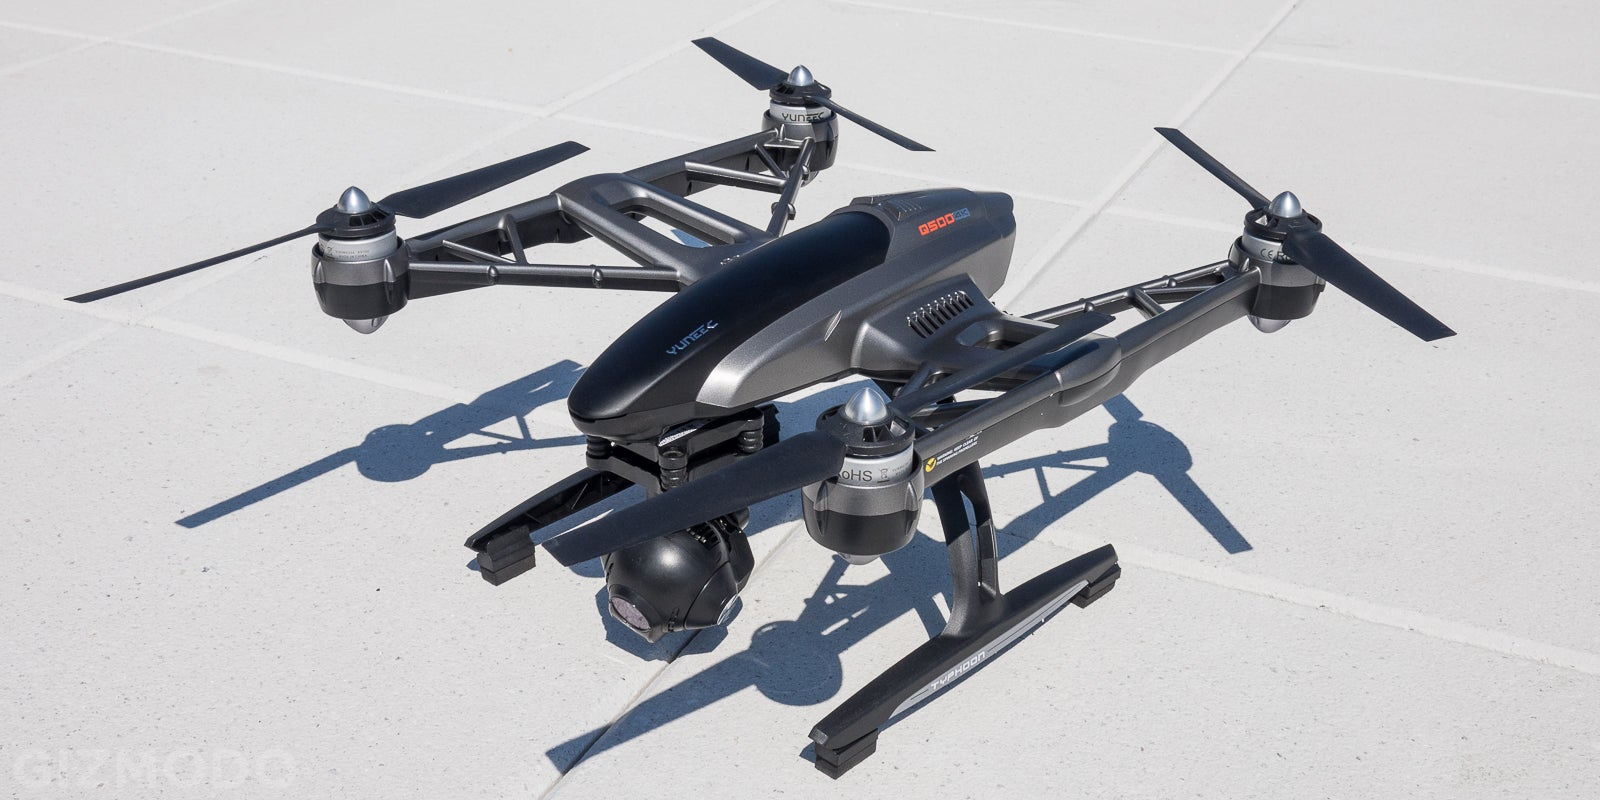 Yuneec Typhoon Q500 4K Review: This Is My New Favourite Drone